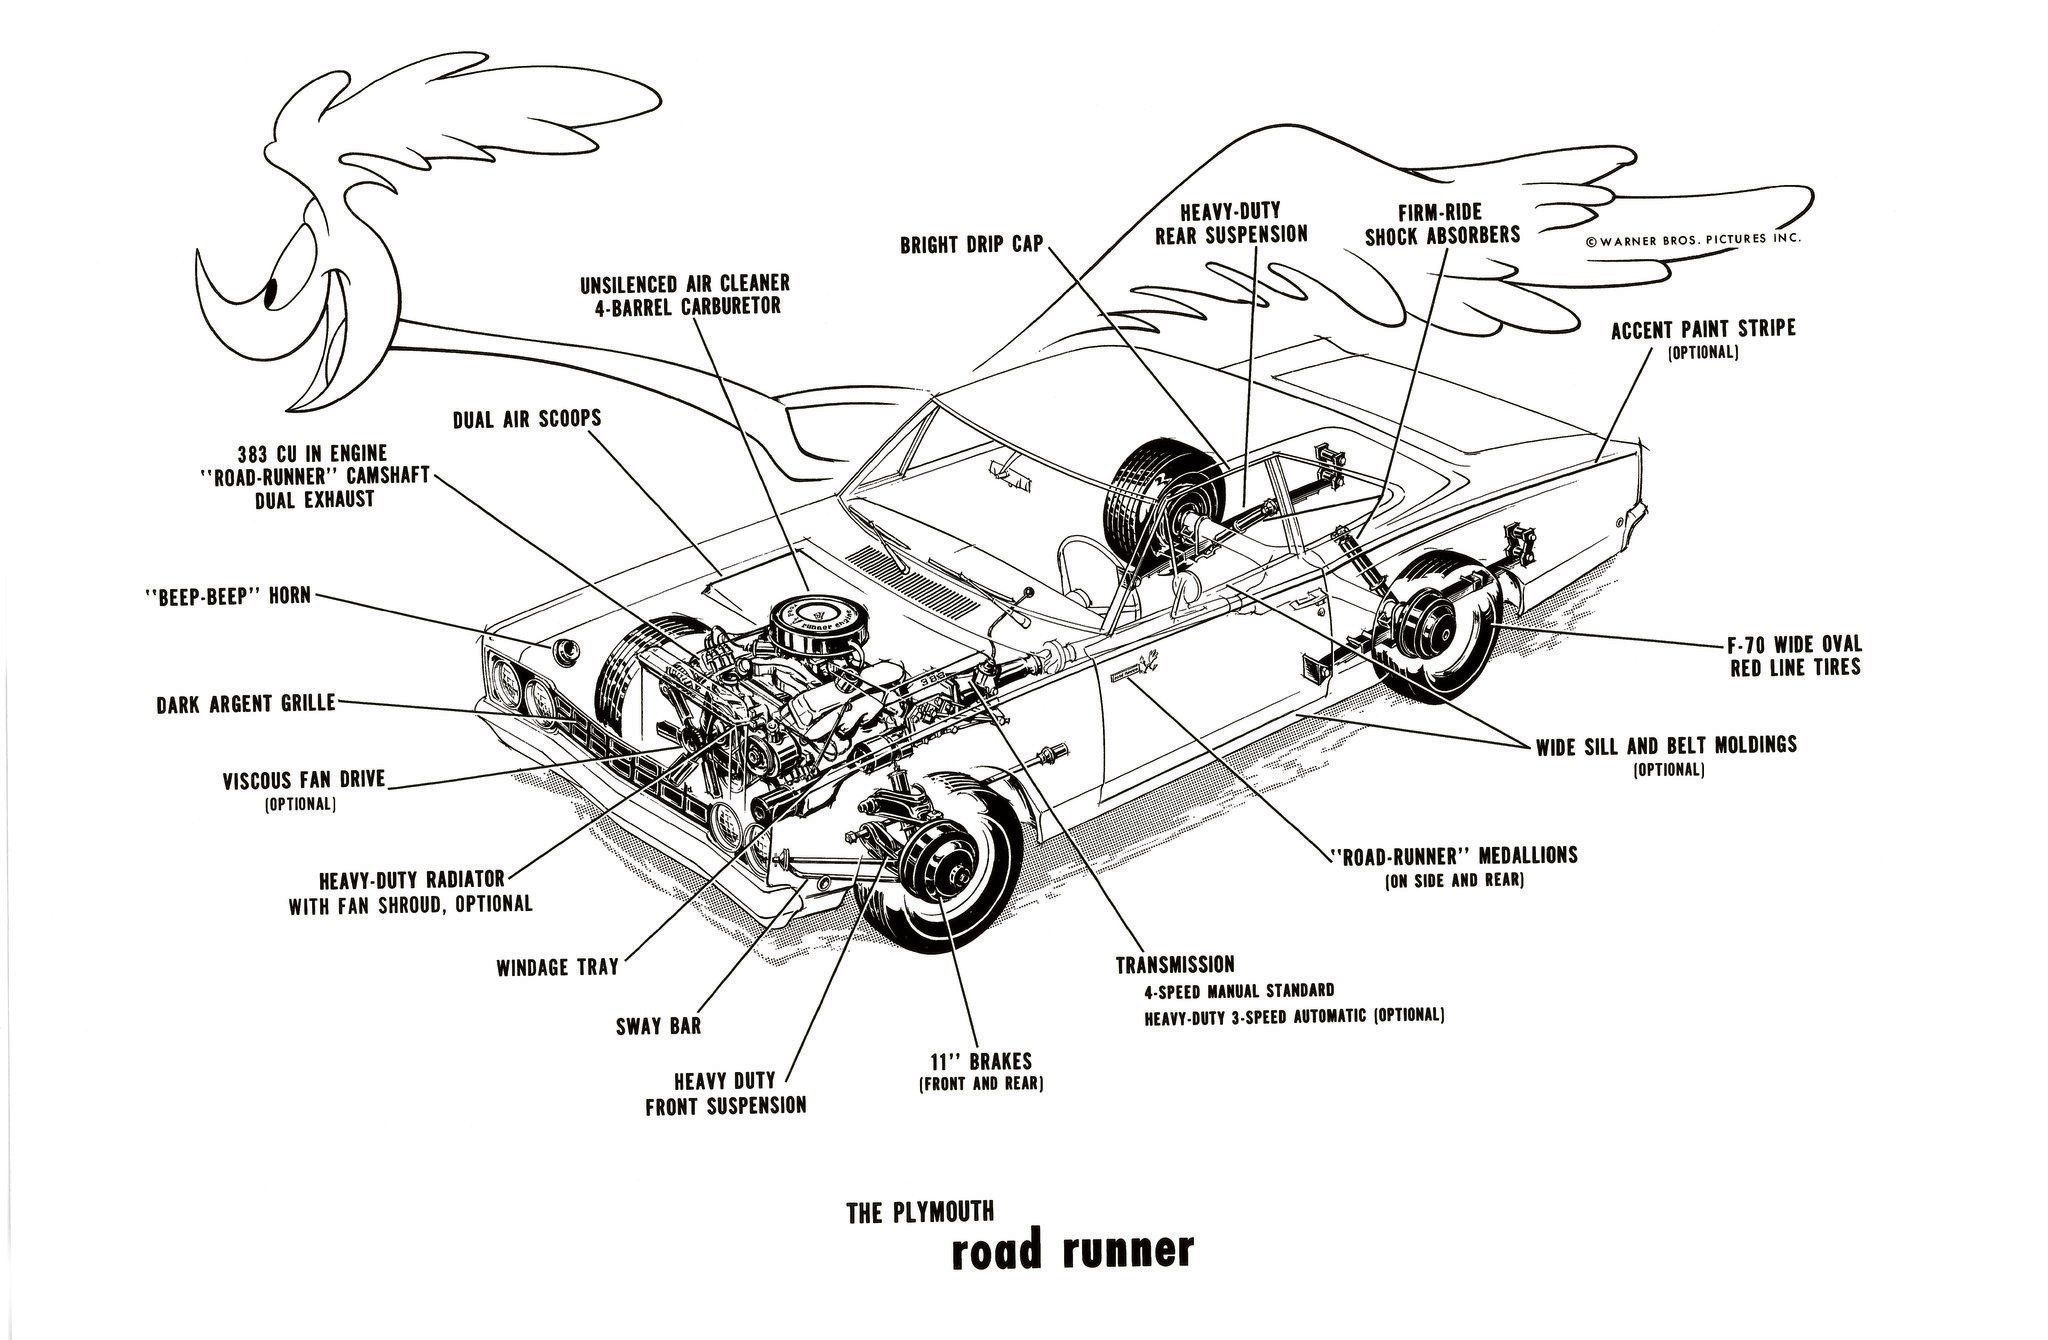 Grafik Wiring Diagram For 1968 Plymouth Roadrunner Hd Version Nekoudadiagram Racinesdeciel Fr